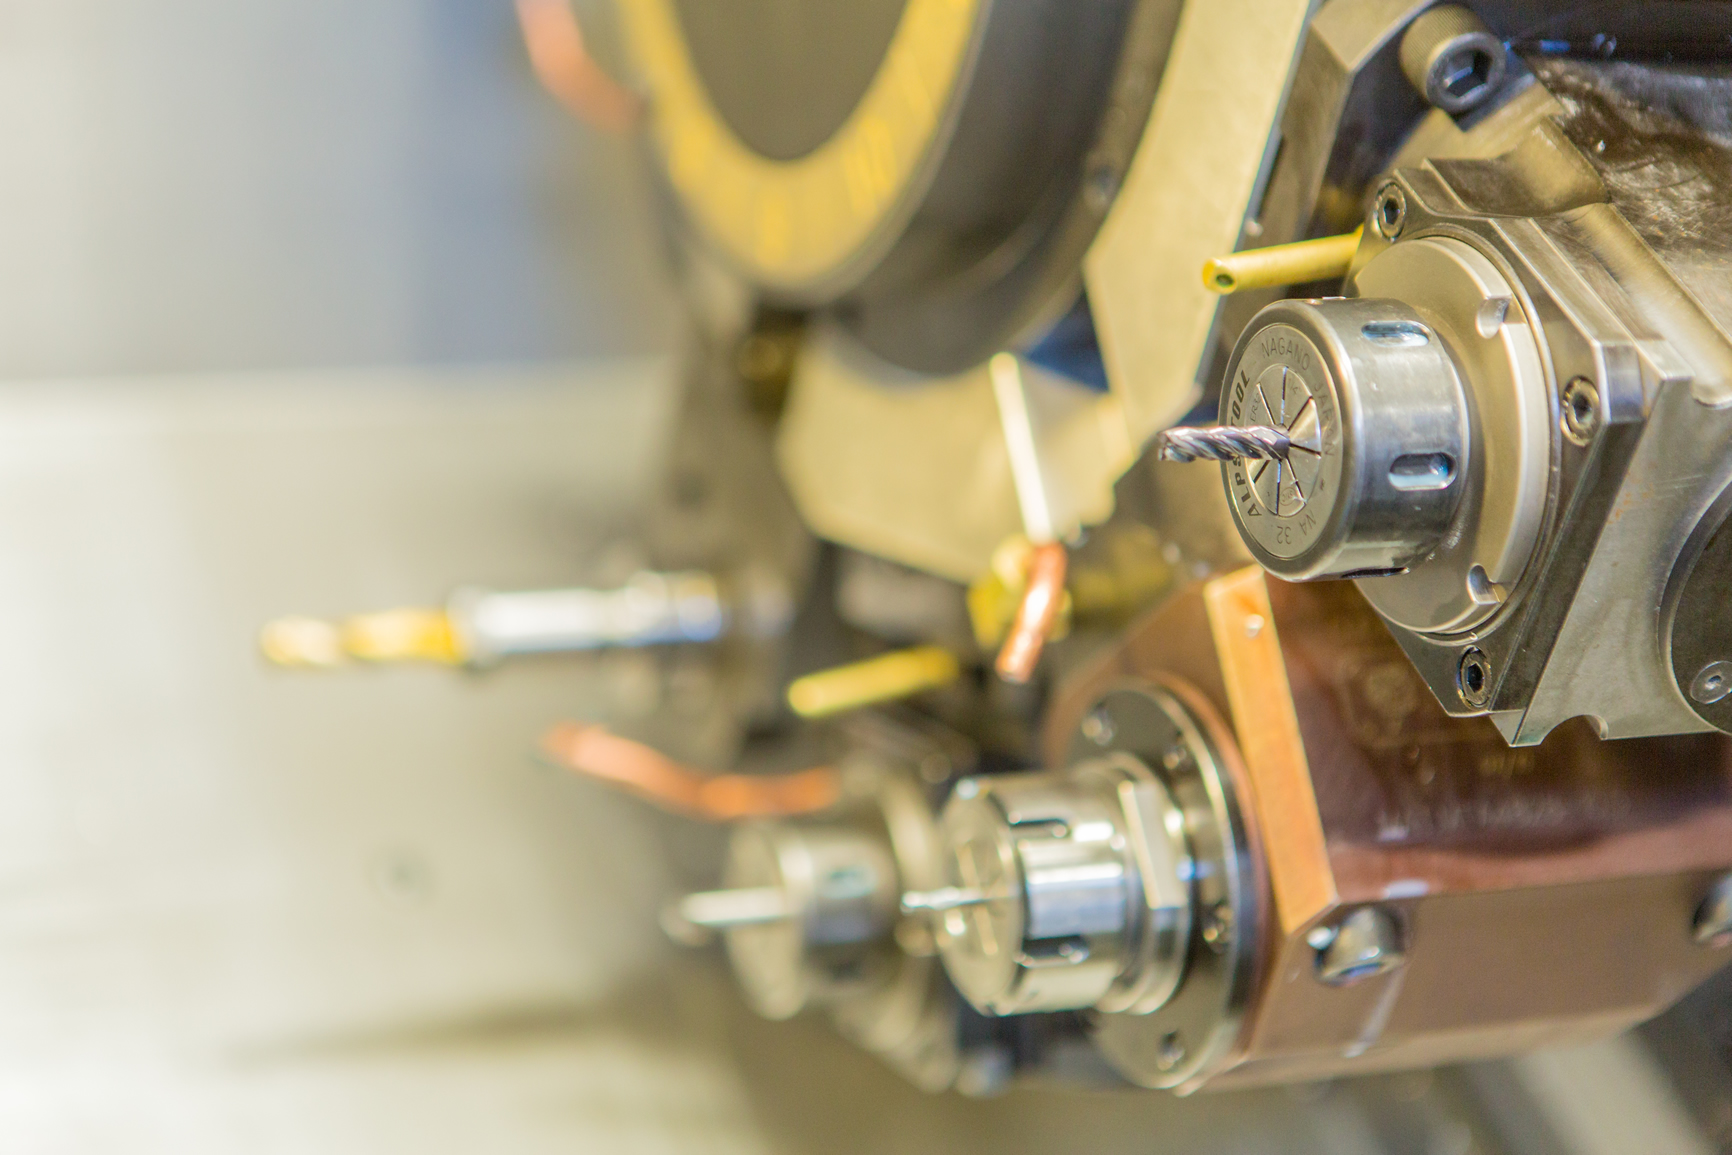 Twin Spindle Live-tooling Lathe